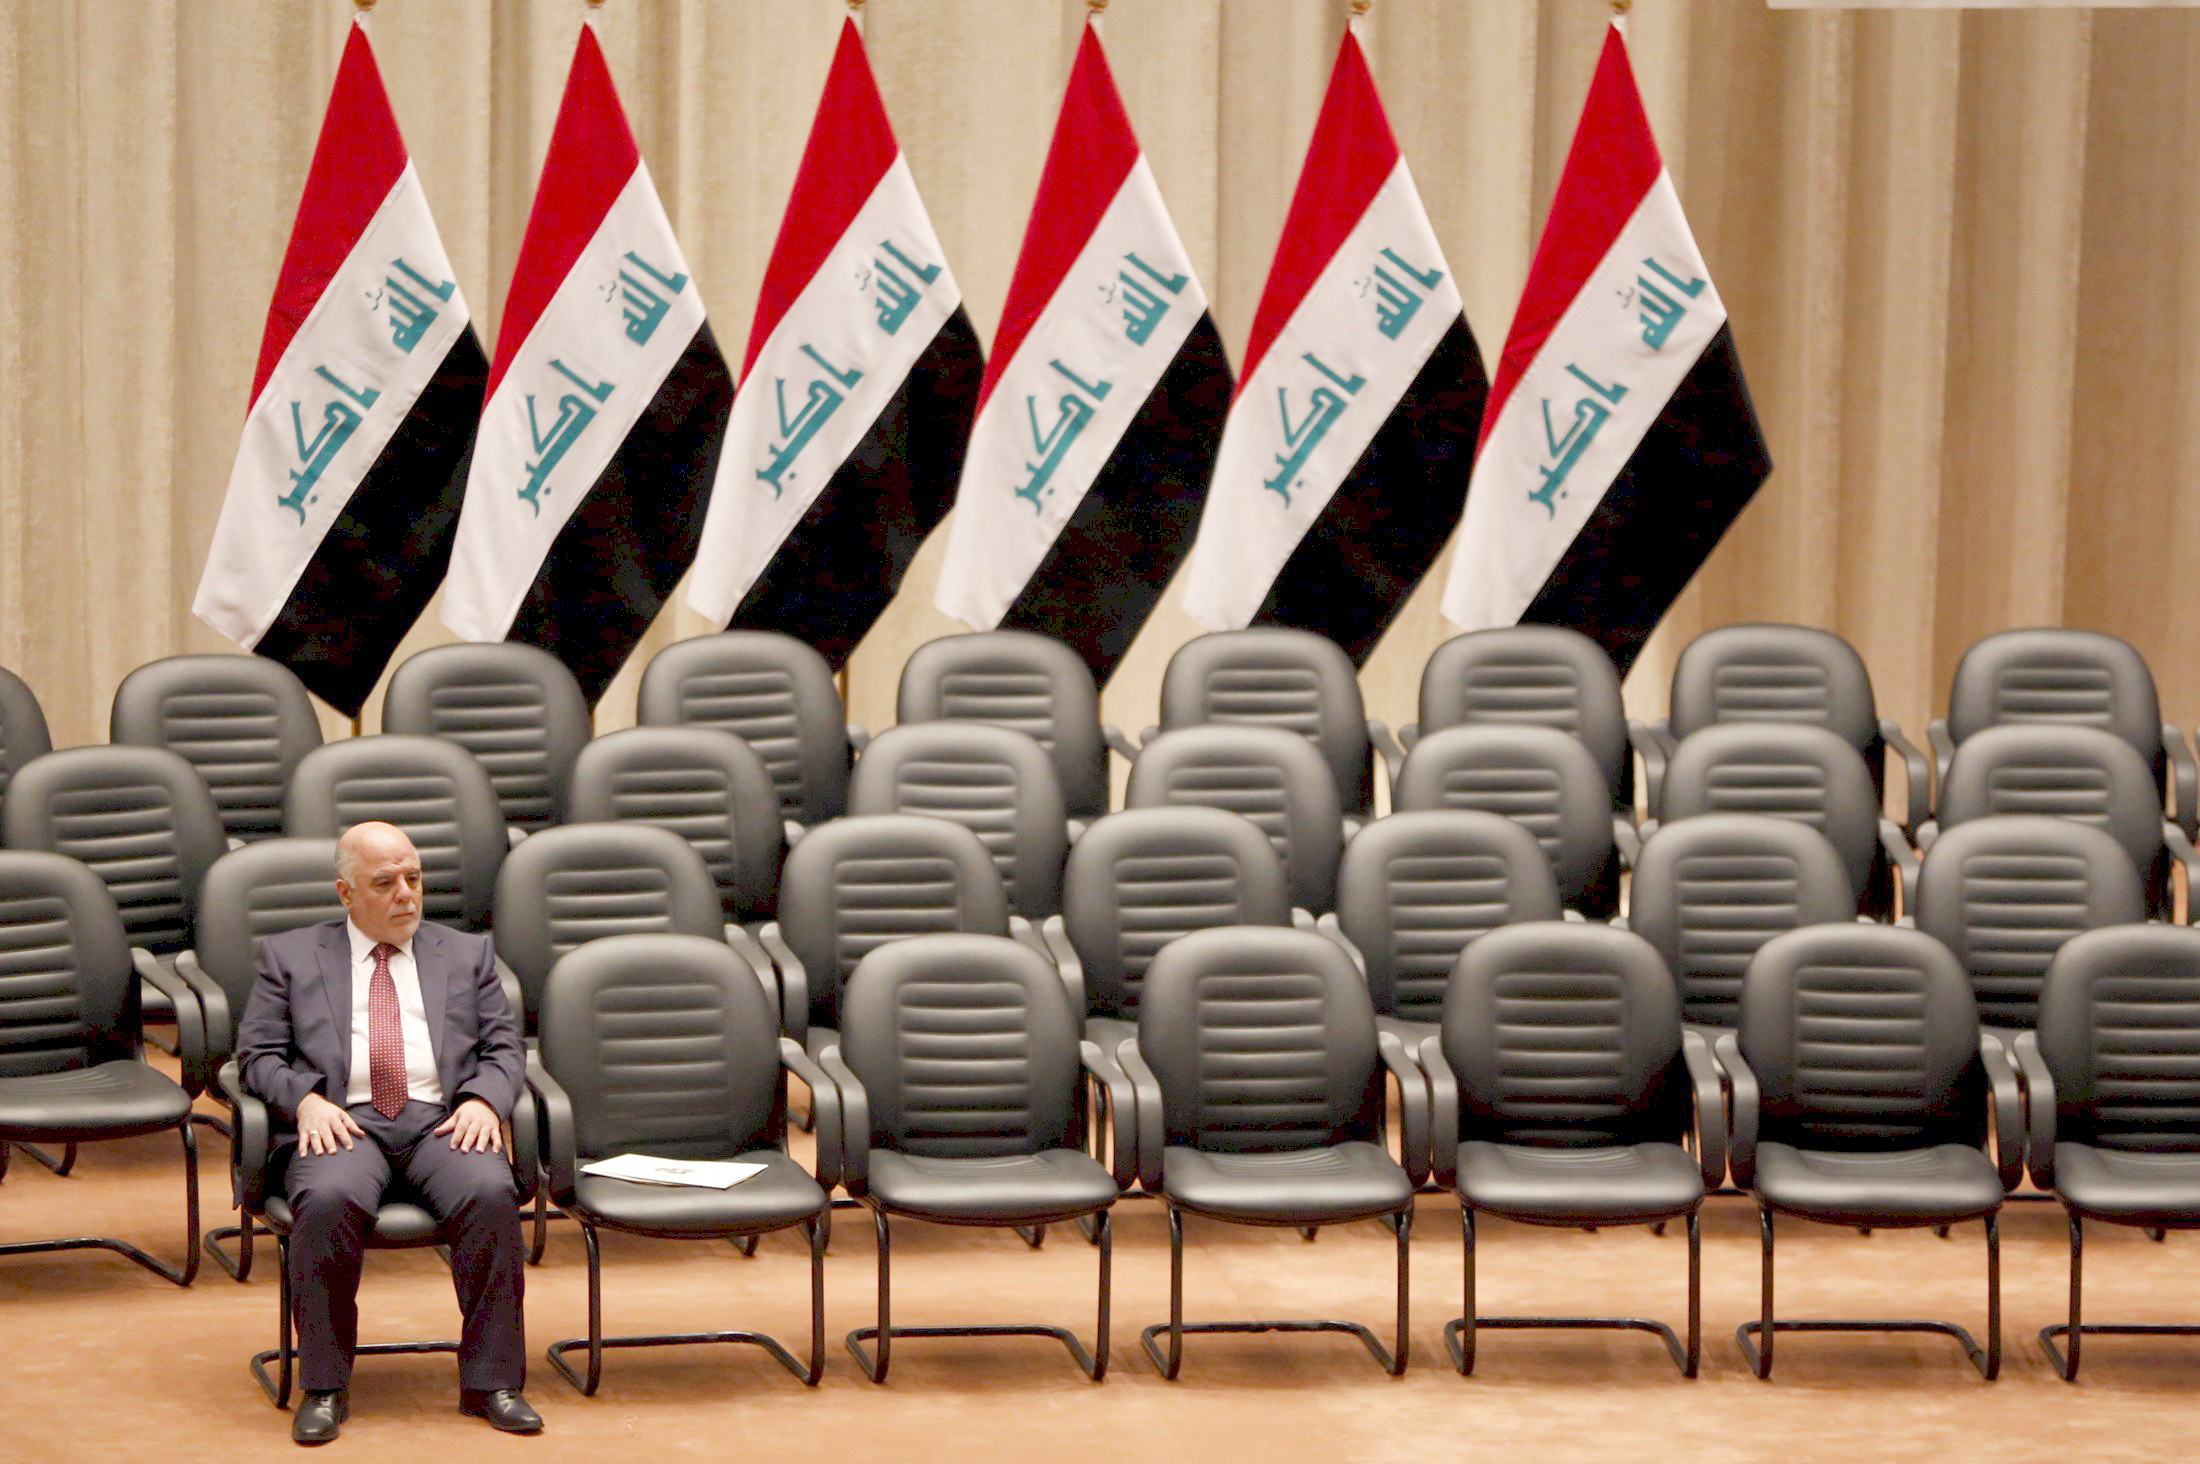 For the time being. A file picture shows Iraq's Prime Minister Haider al-Abadi sitting during a session at the parliament headquarters in Baghdad. (Reuters)